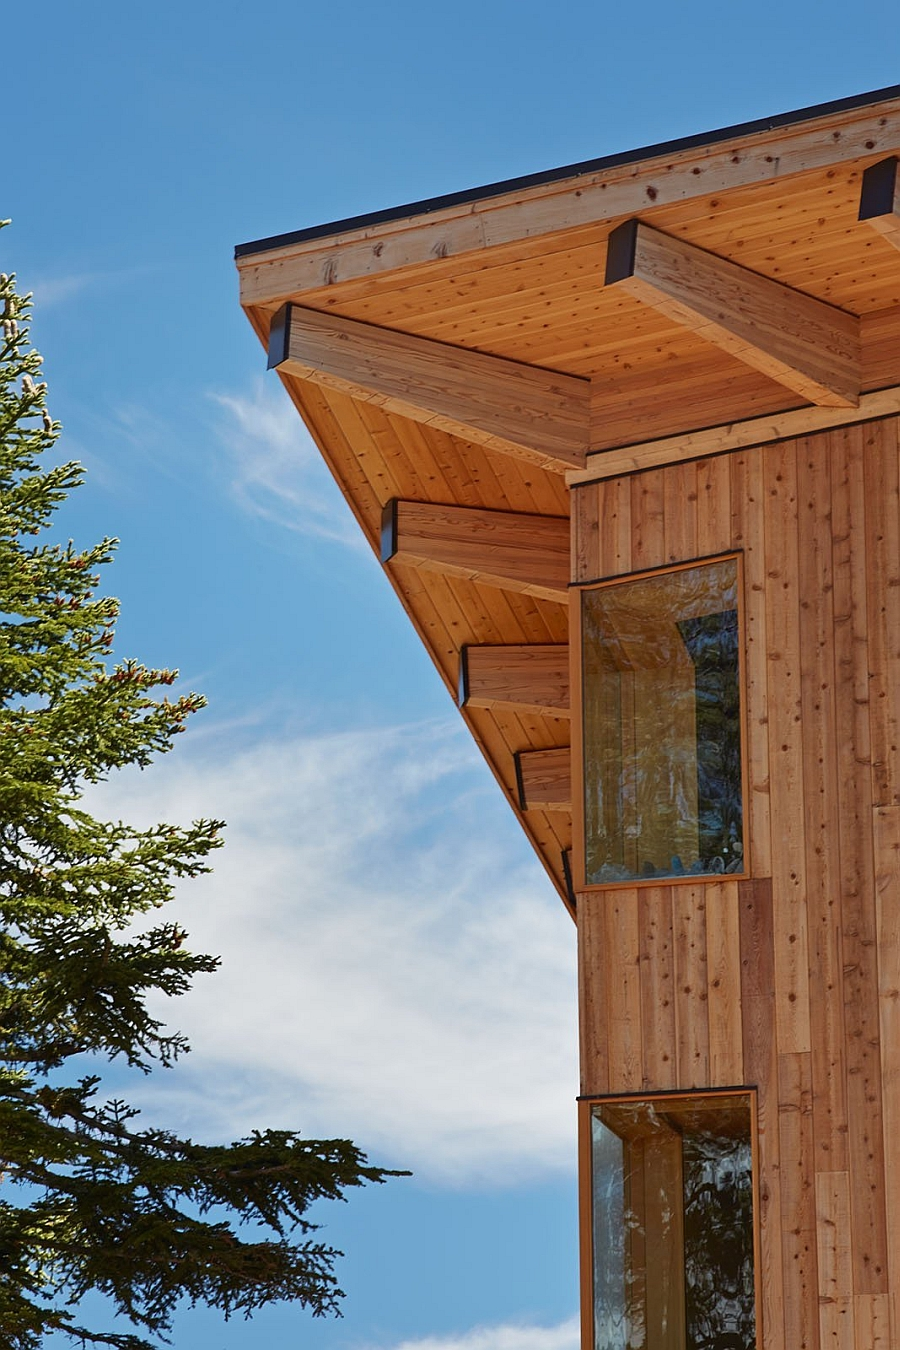 Gorgeous wooden exterior of the Crow's Nest Residence